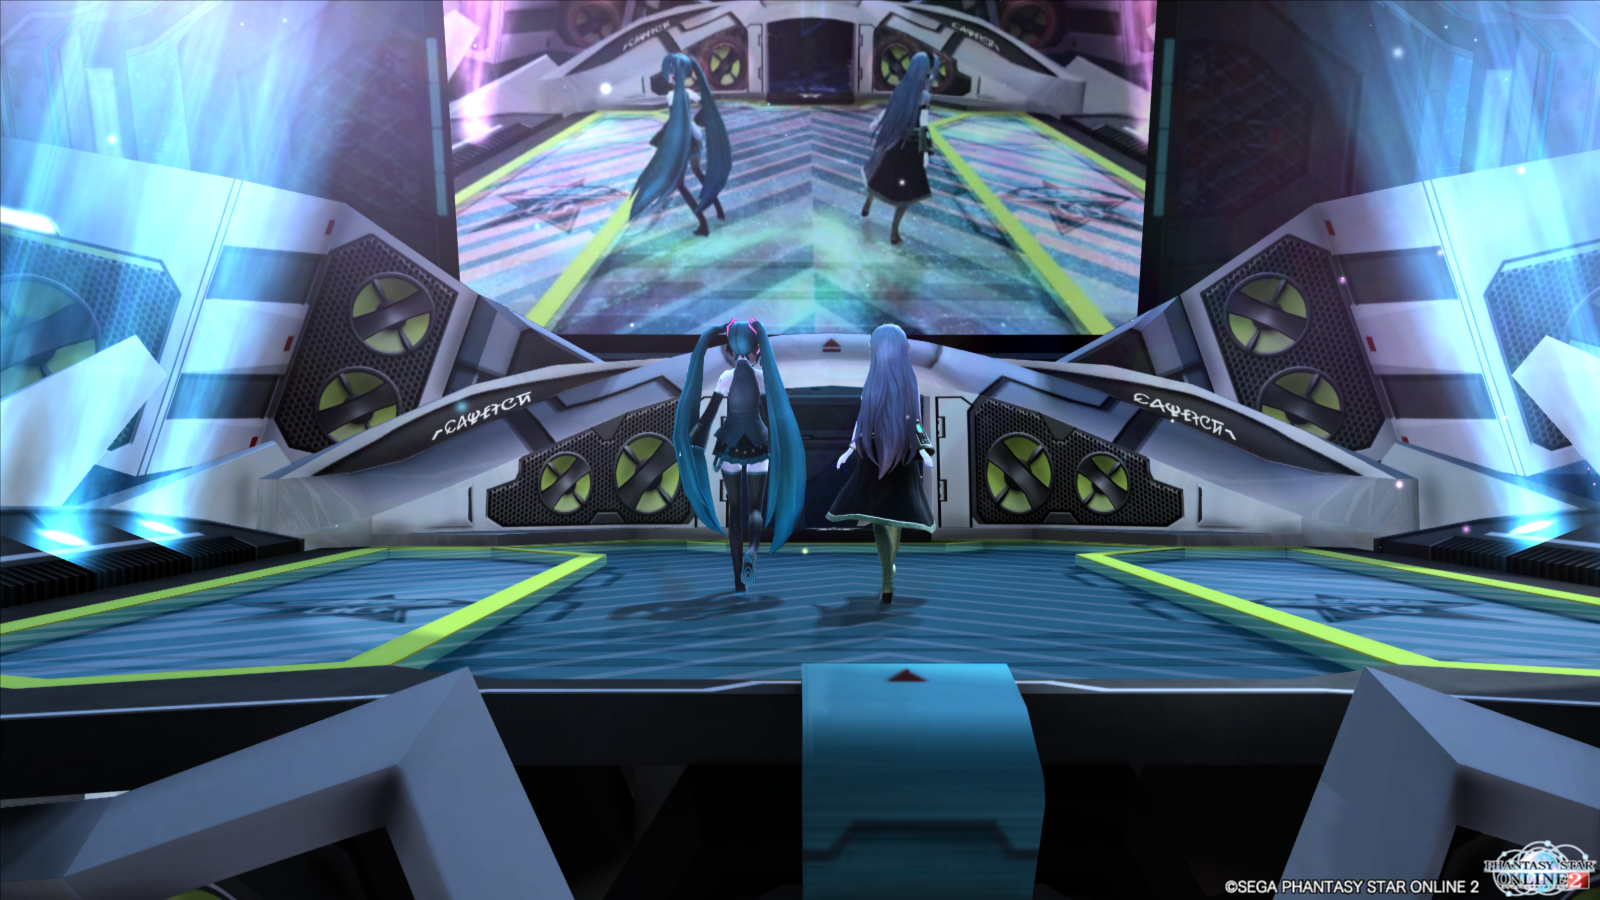 pso20140809_180517_085.png